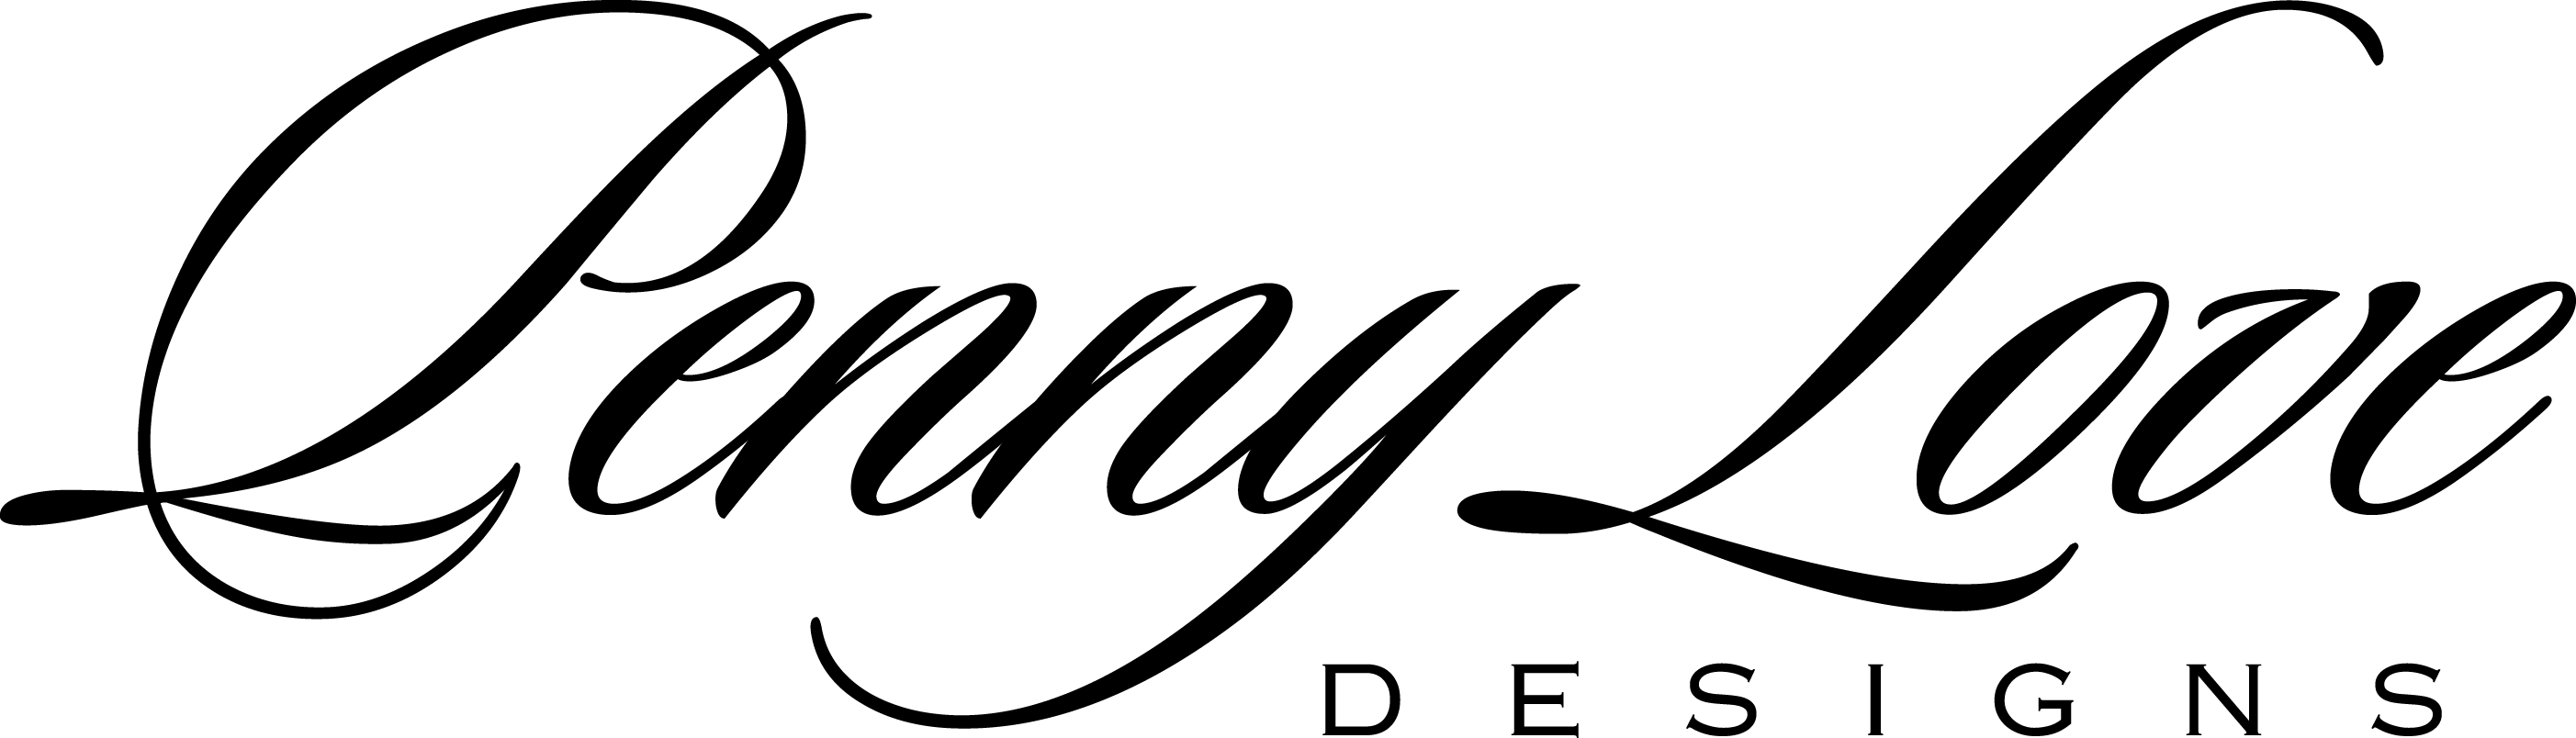 Penny Love Designs